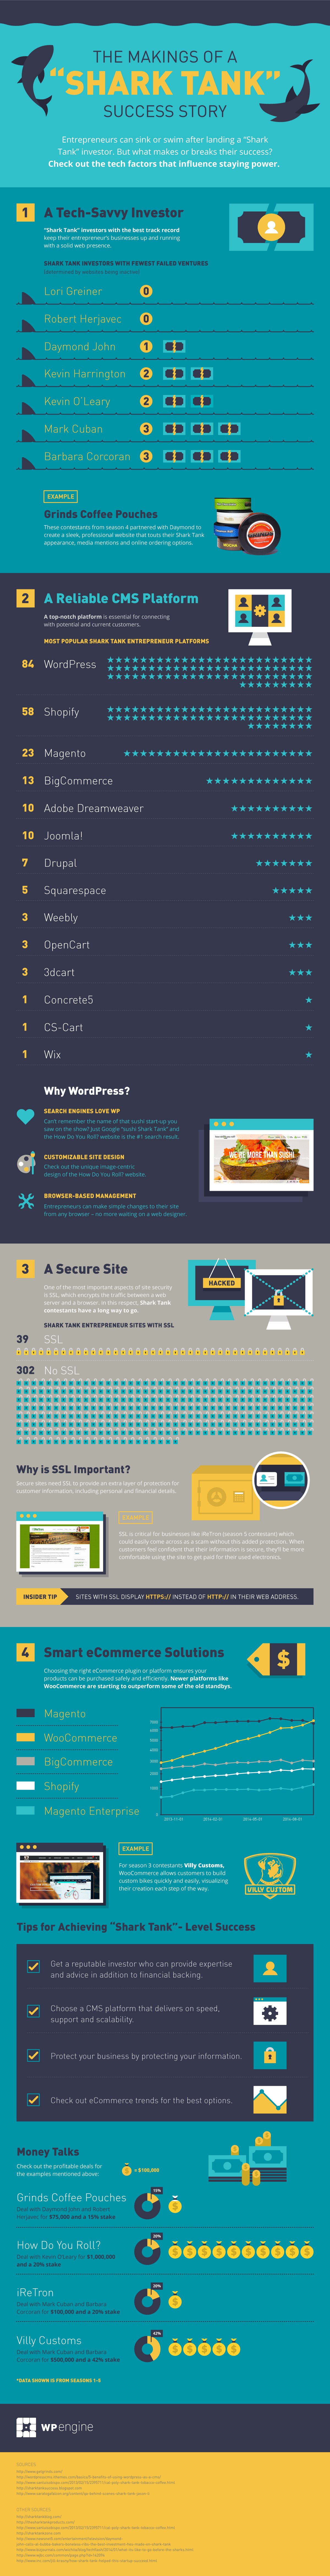 WPEngine Shark Tank Infographic